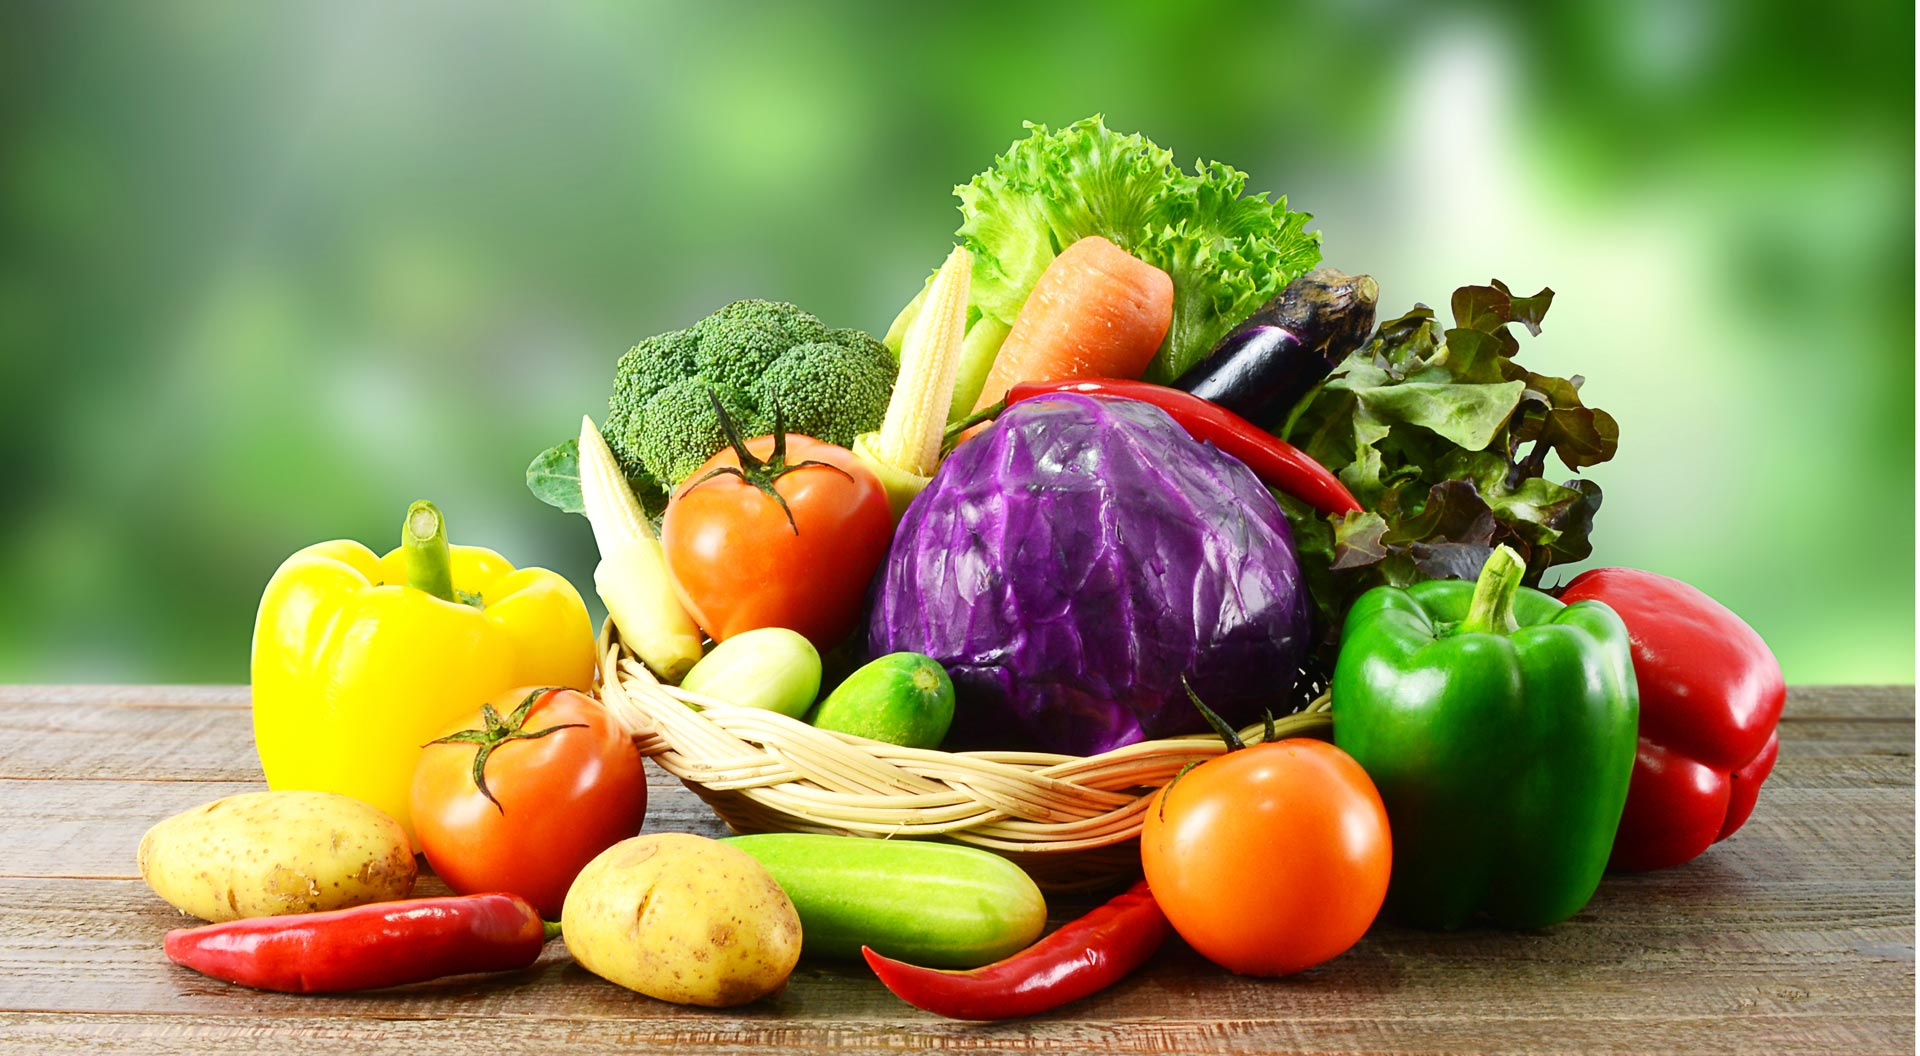 buy-online-vegetables